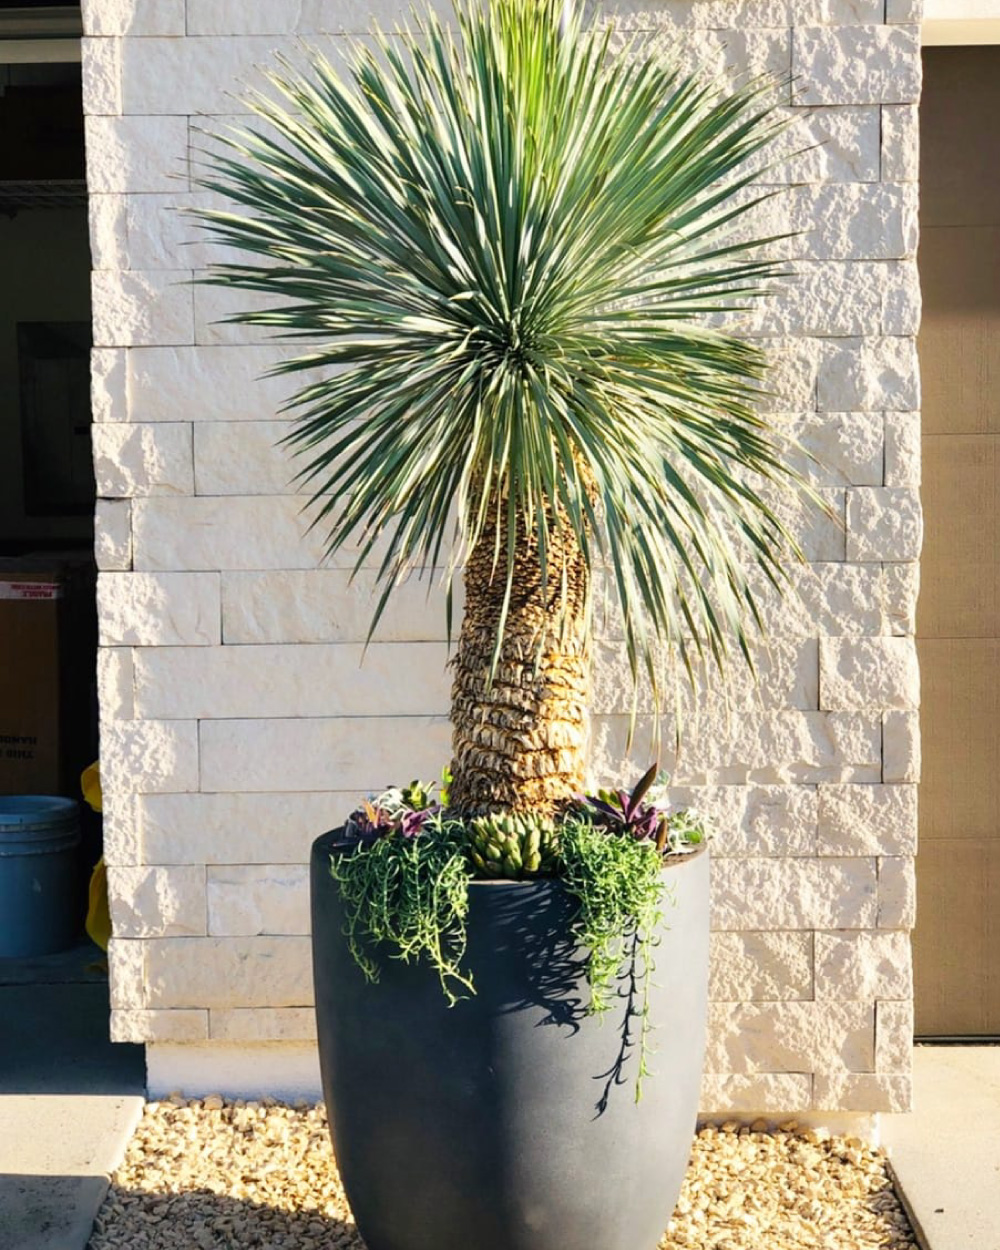 Yucca plant in pot against stone wall